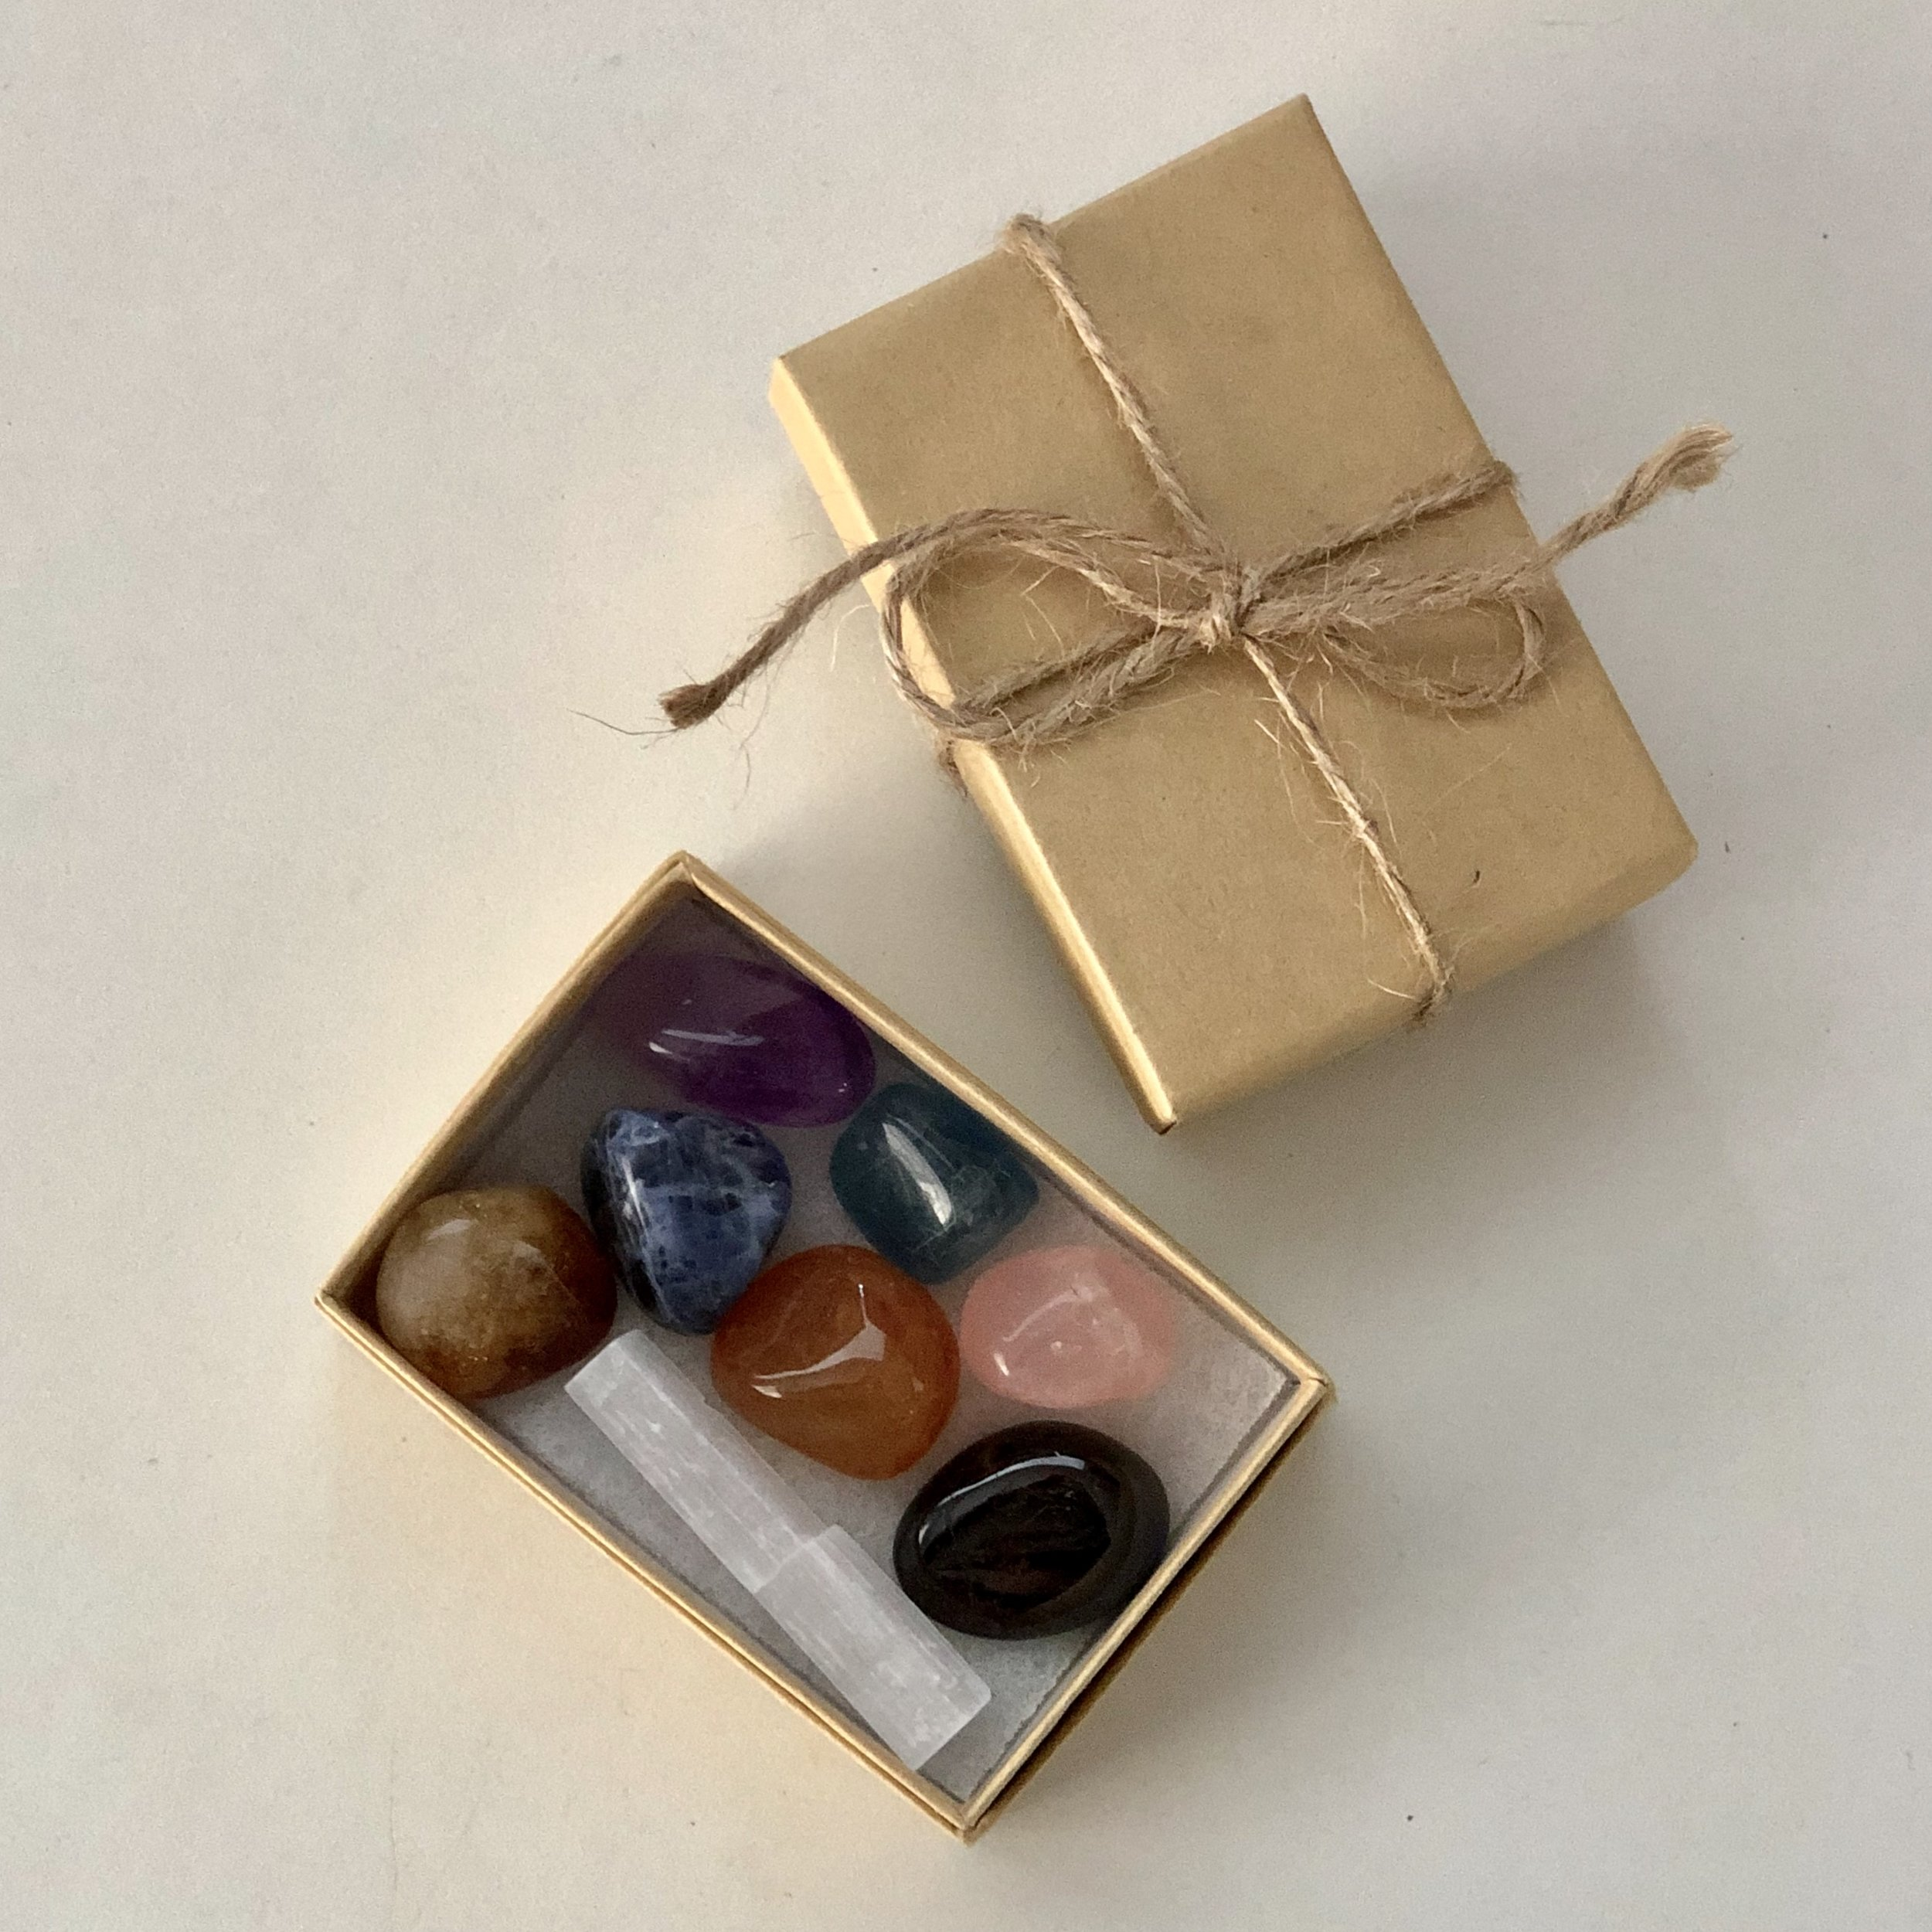 Chakra Healing Crystal Kit    Includes:  Amethyst, Sodalite, Blue Fluorite, Rose Quartz, Citrine, Carnelian, Hematite, Selenite.   Price: $20